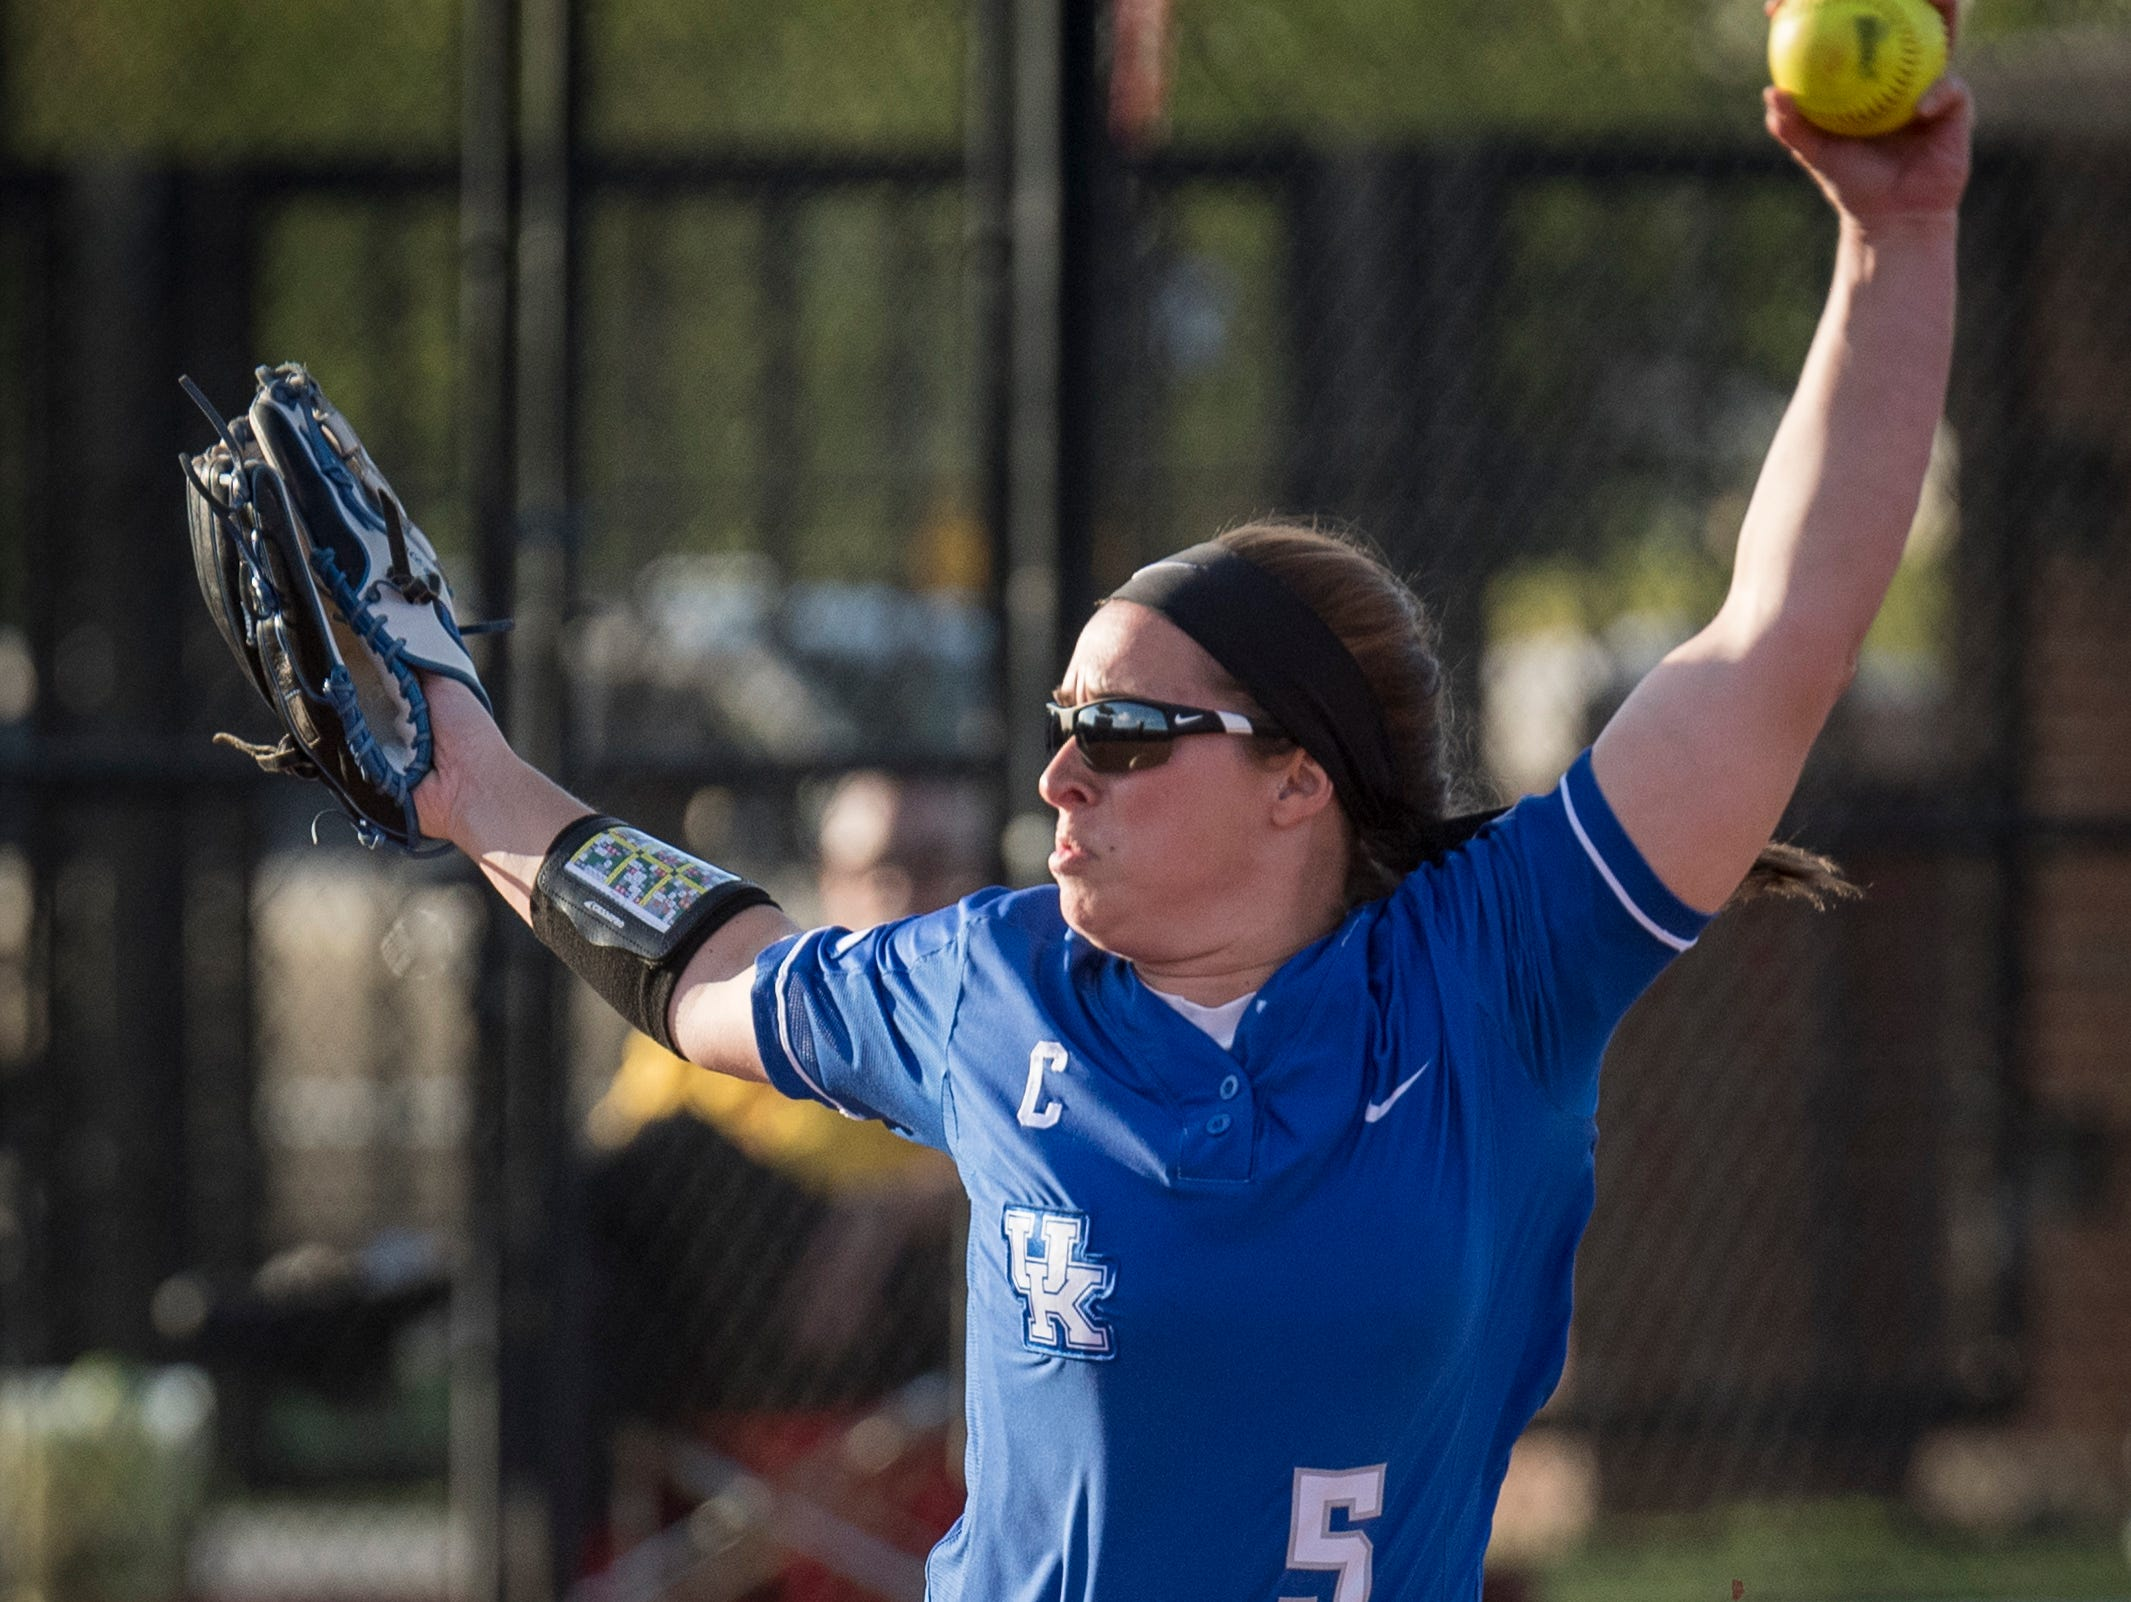 Kentucky starting pitcher/relief pitcher Meagan Prince (5) pitches during the game against University of Louisville played in Louisville, Kentucky, Wednesday, April 12, 2017. Photo: Bryan Woolston